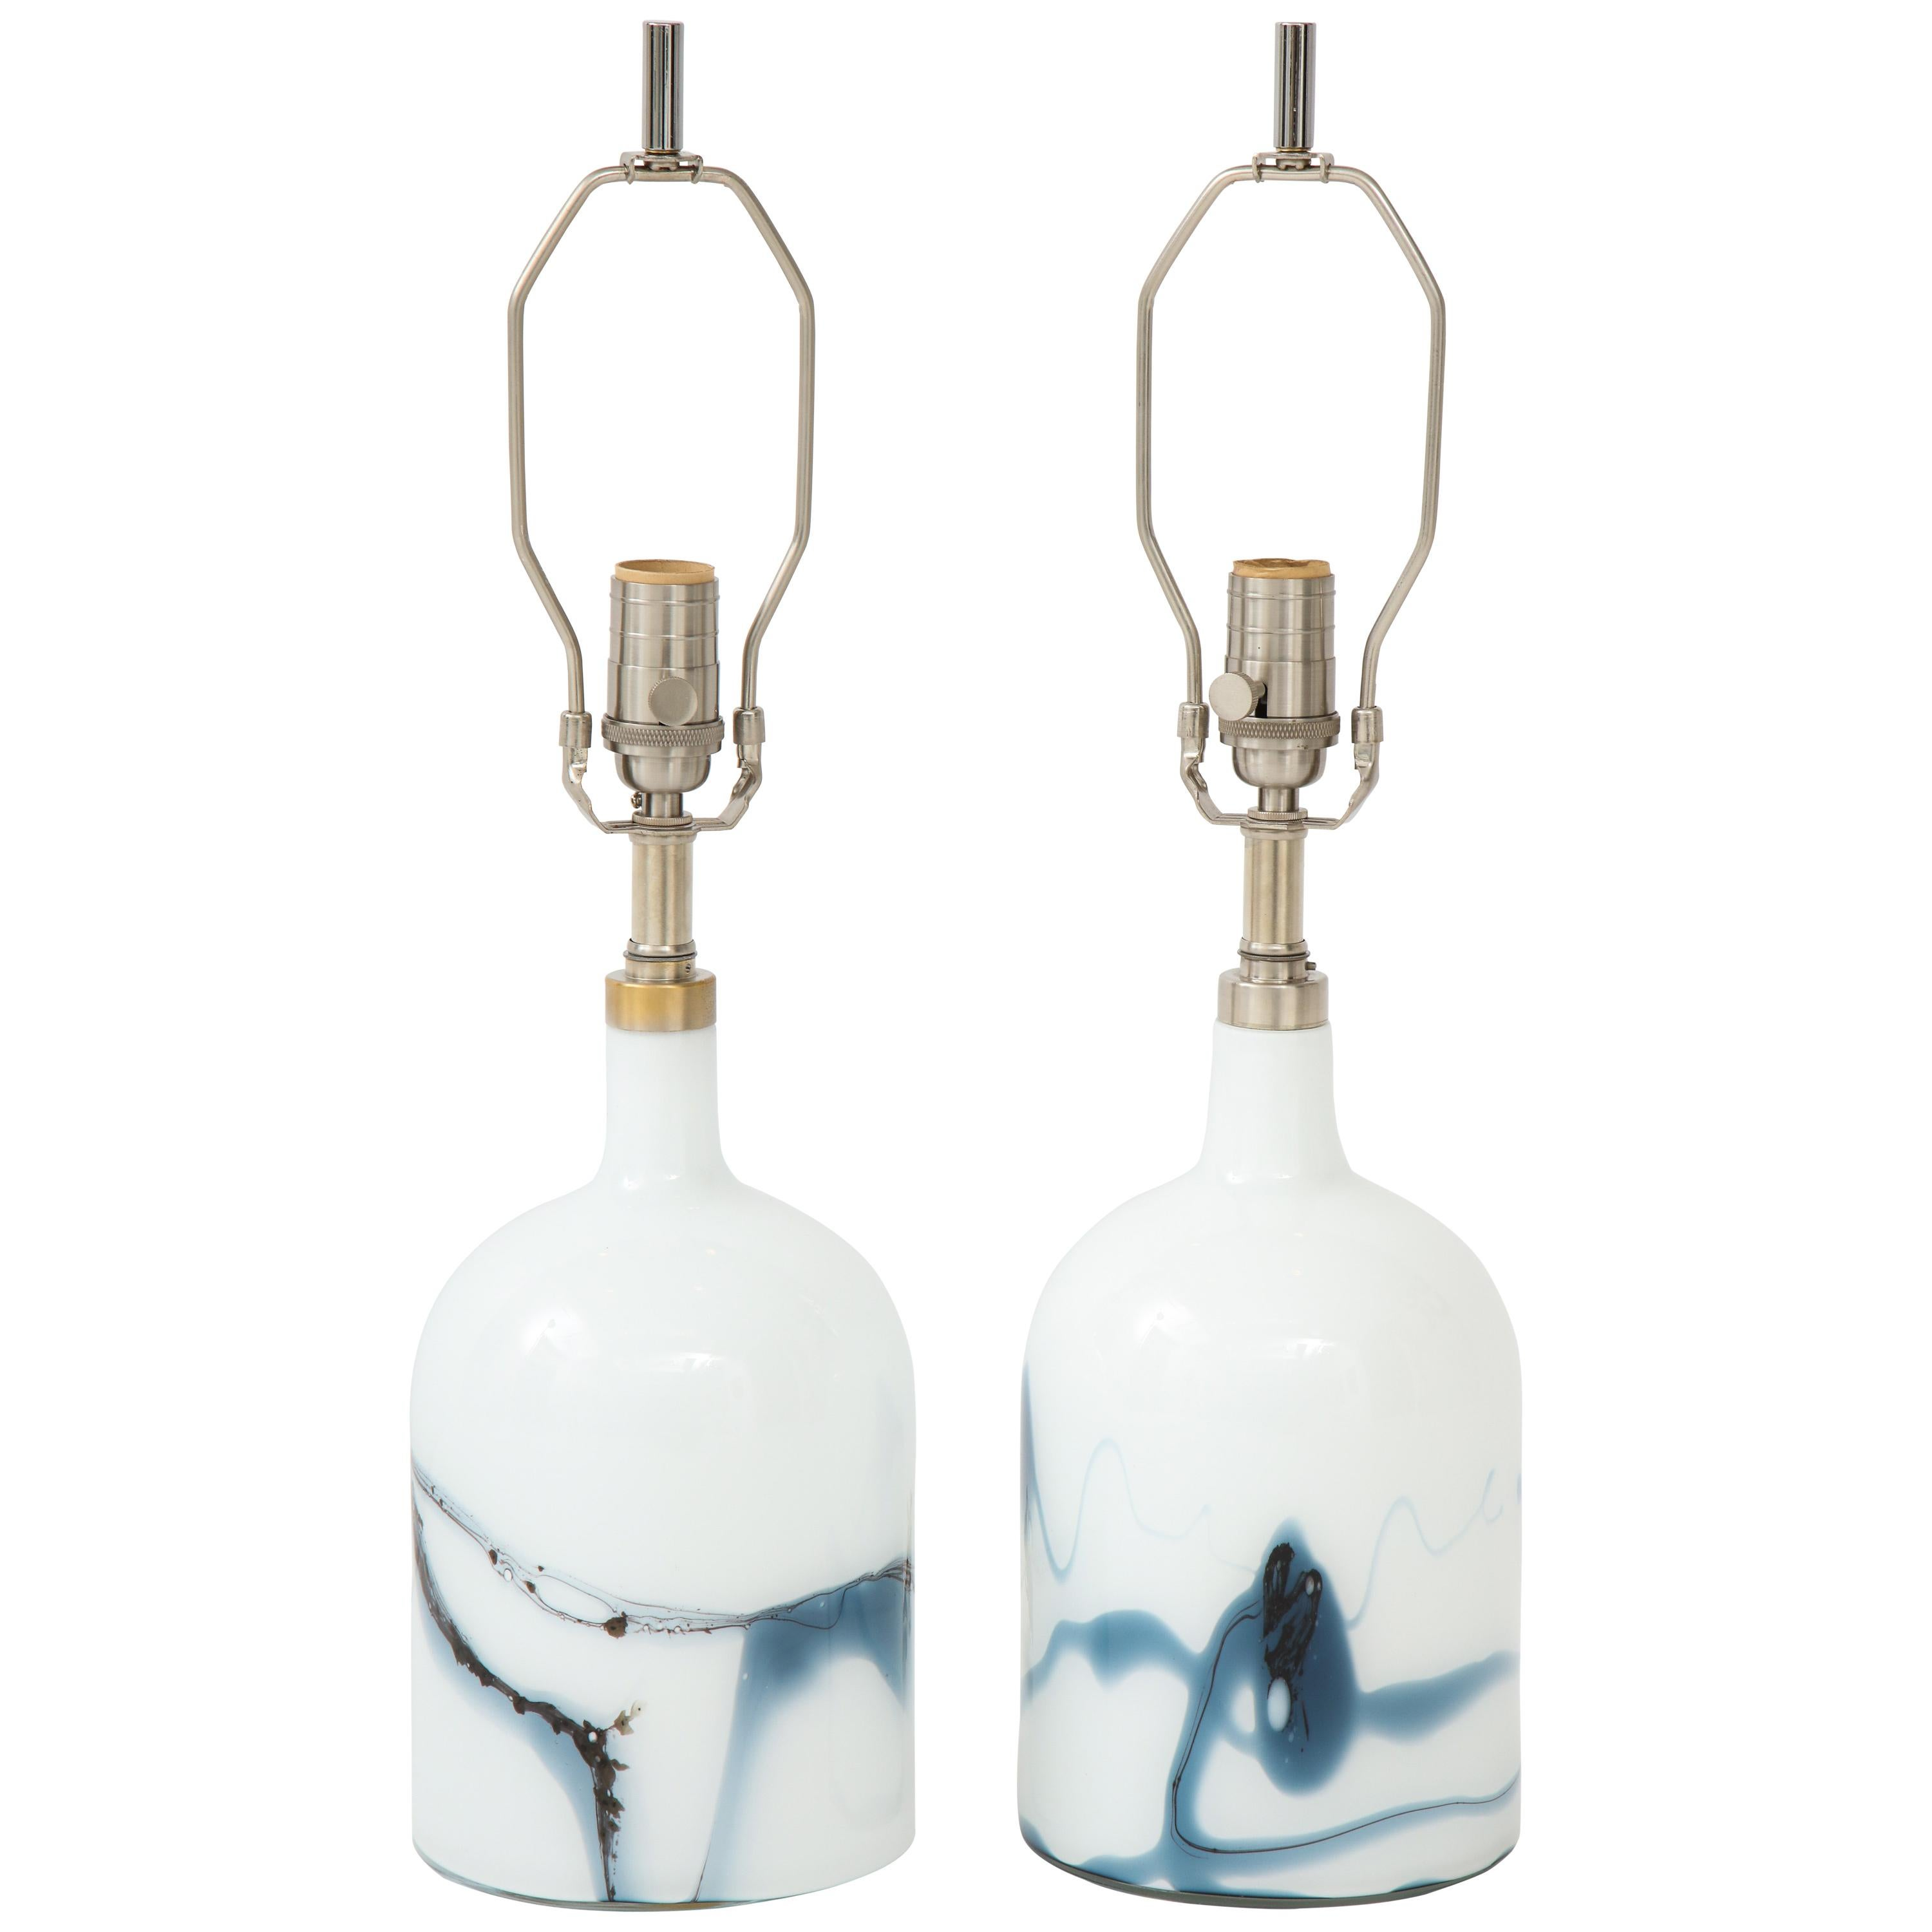 Michael Bang for Holmegaard Petrol Blue, White Glass Lamps